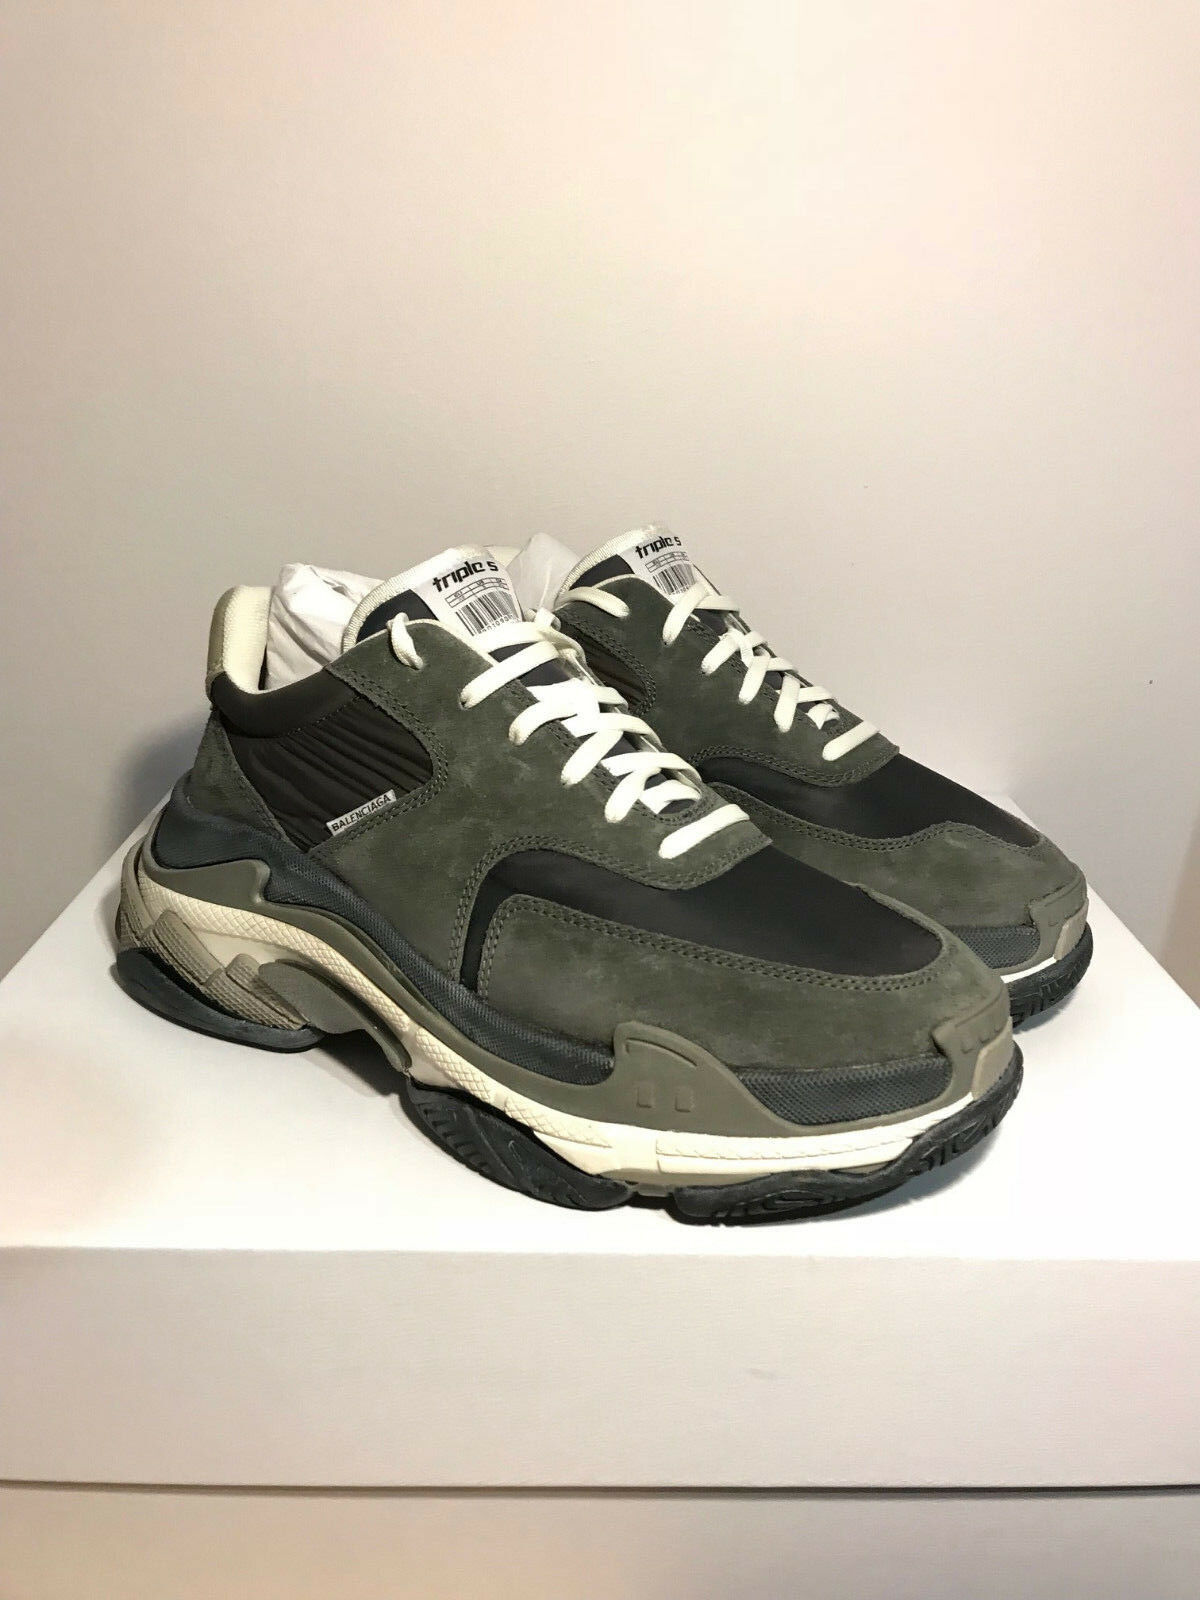 Authentic Balenciaga Triple S trainer sneakers OG US 9 Men New GREY